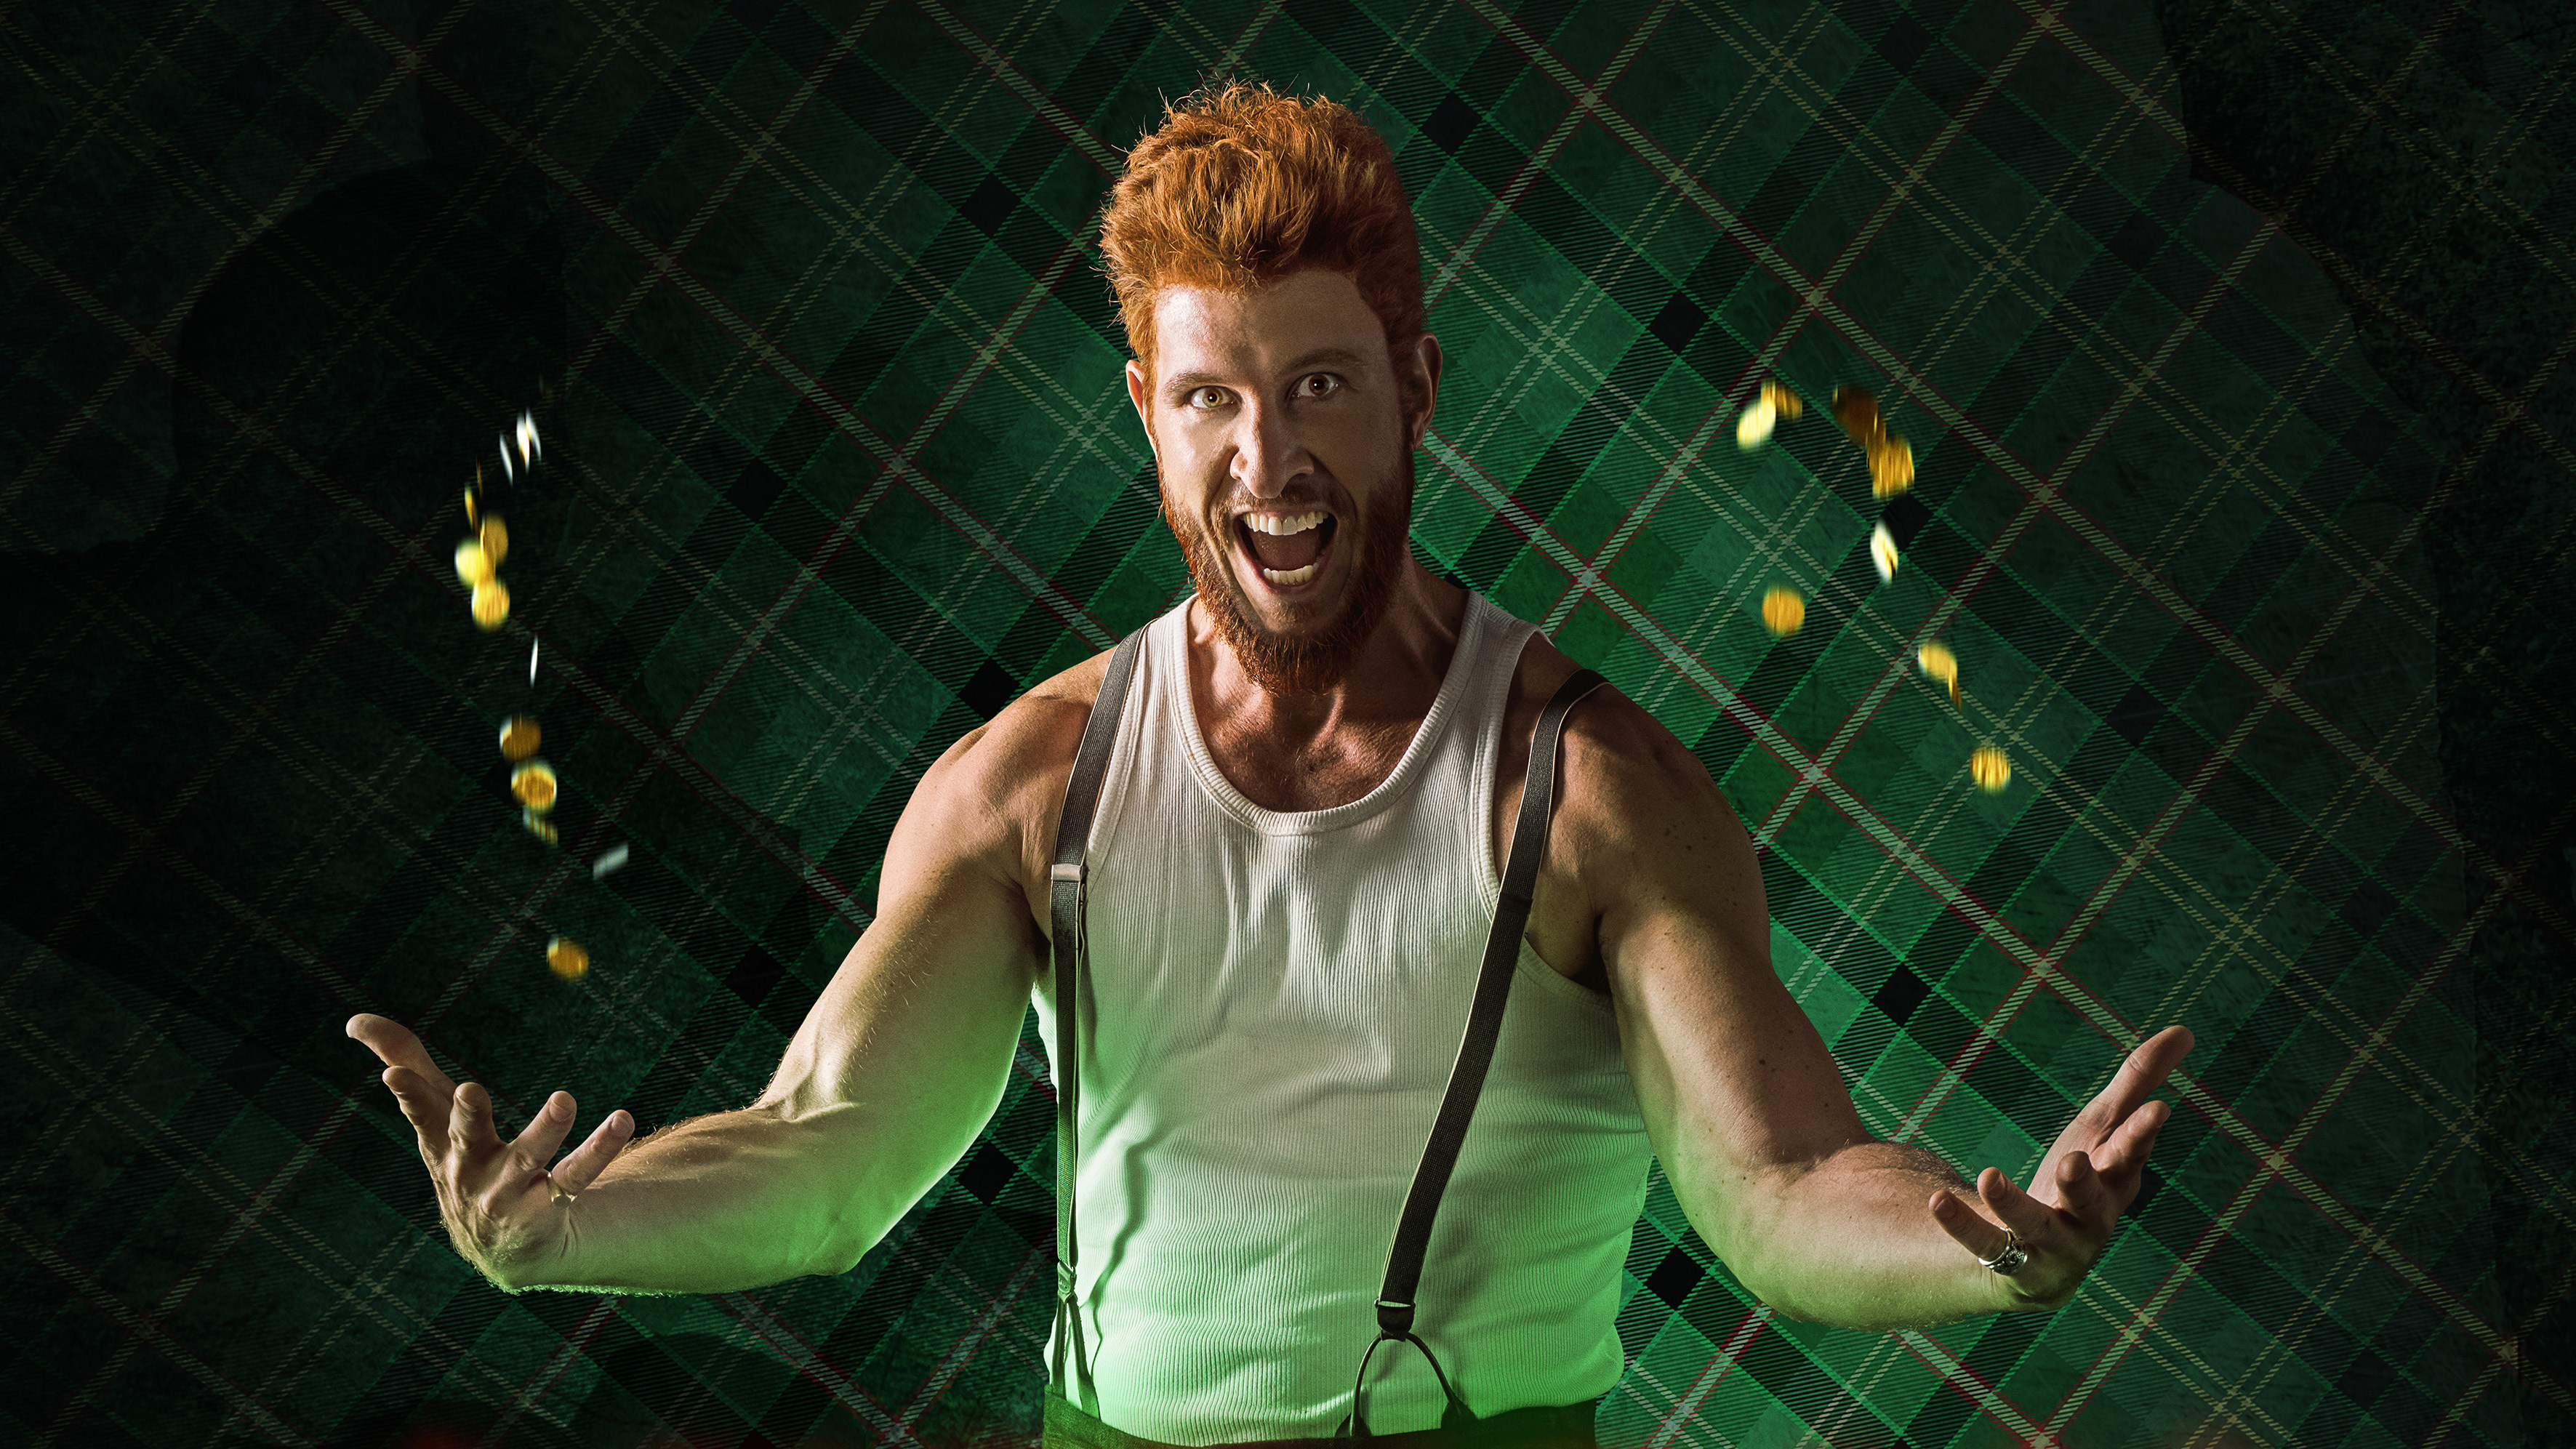 pablo schreiber as mad sweeney in american gods 4k, hd tv shows, 4k